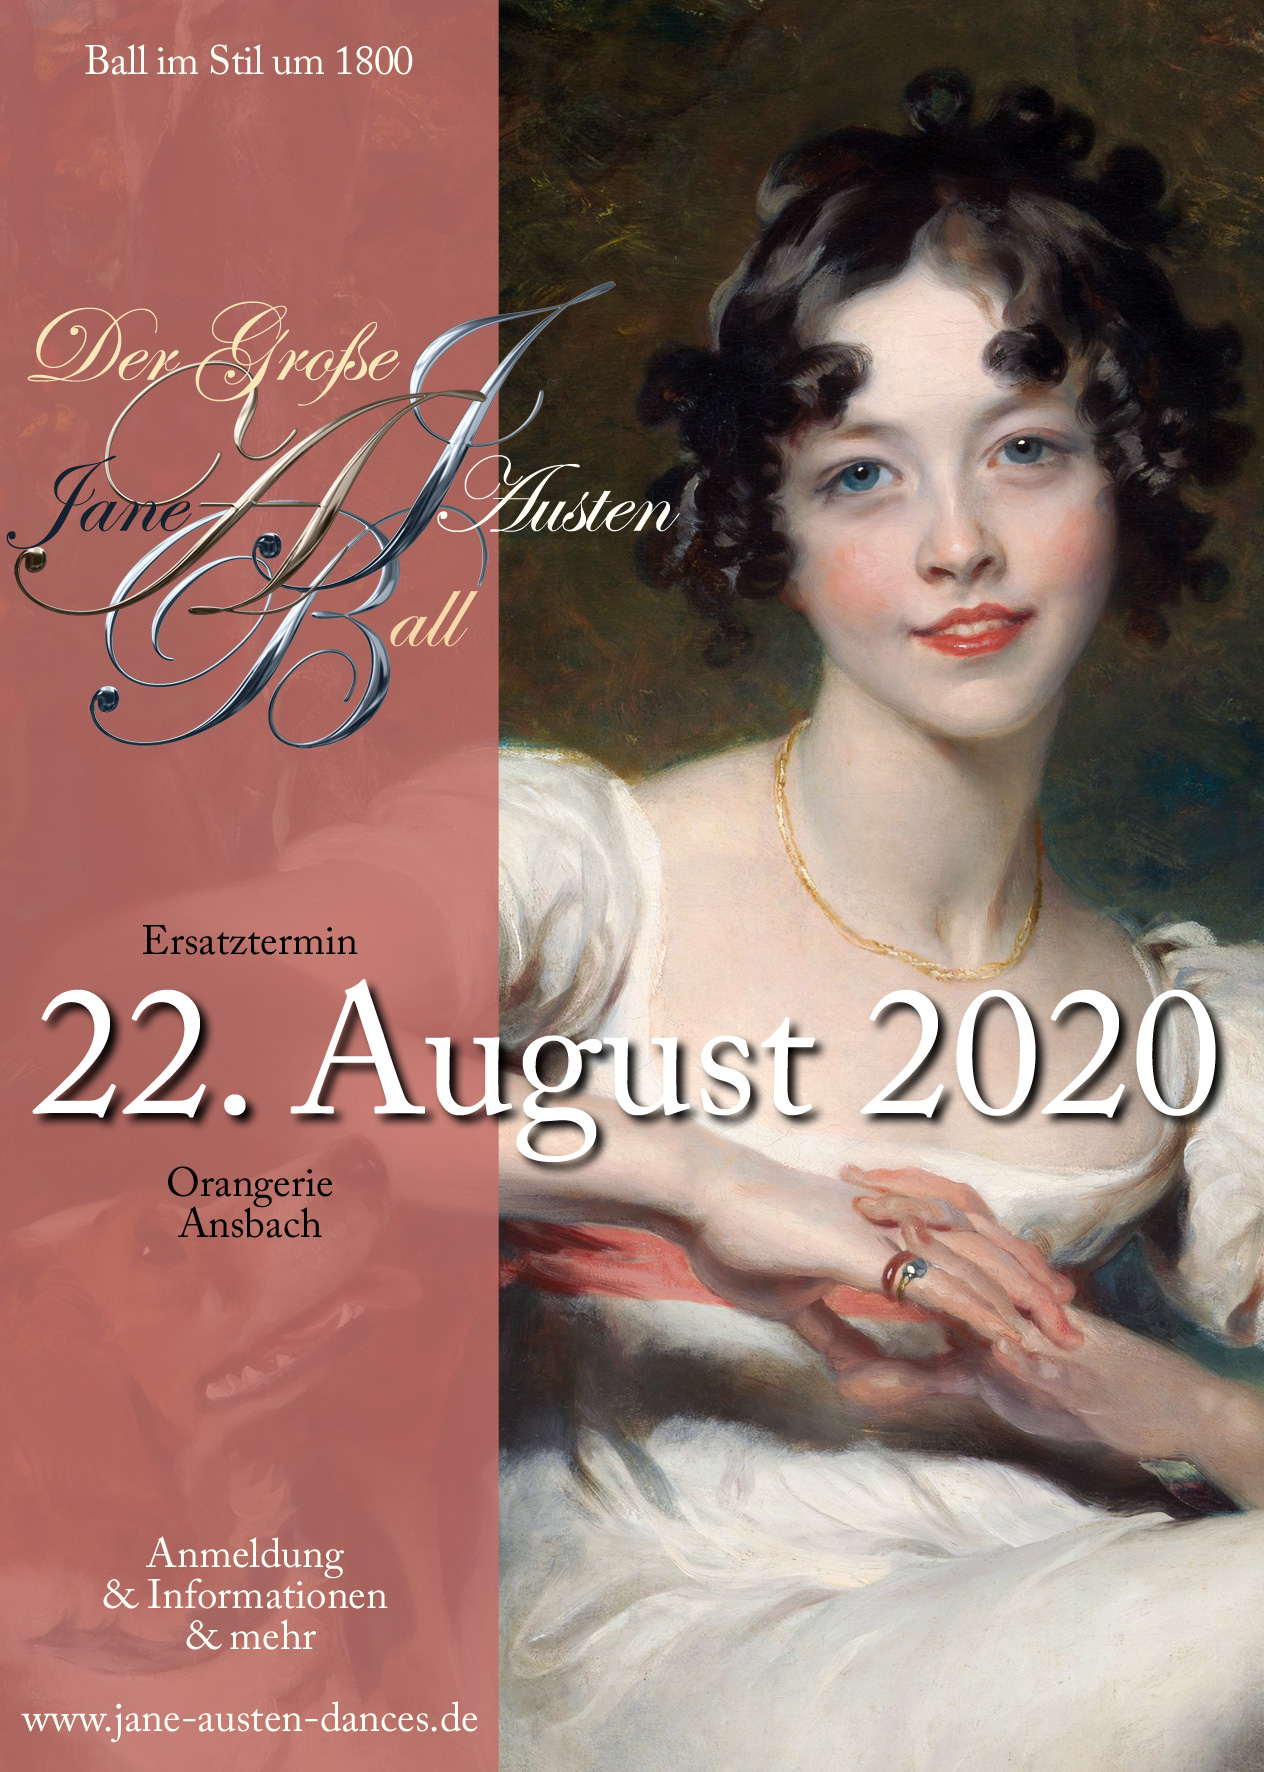 Der Grosse Jane Austen Ball 2020